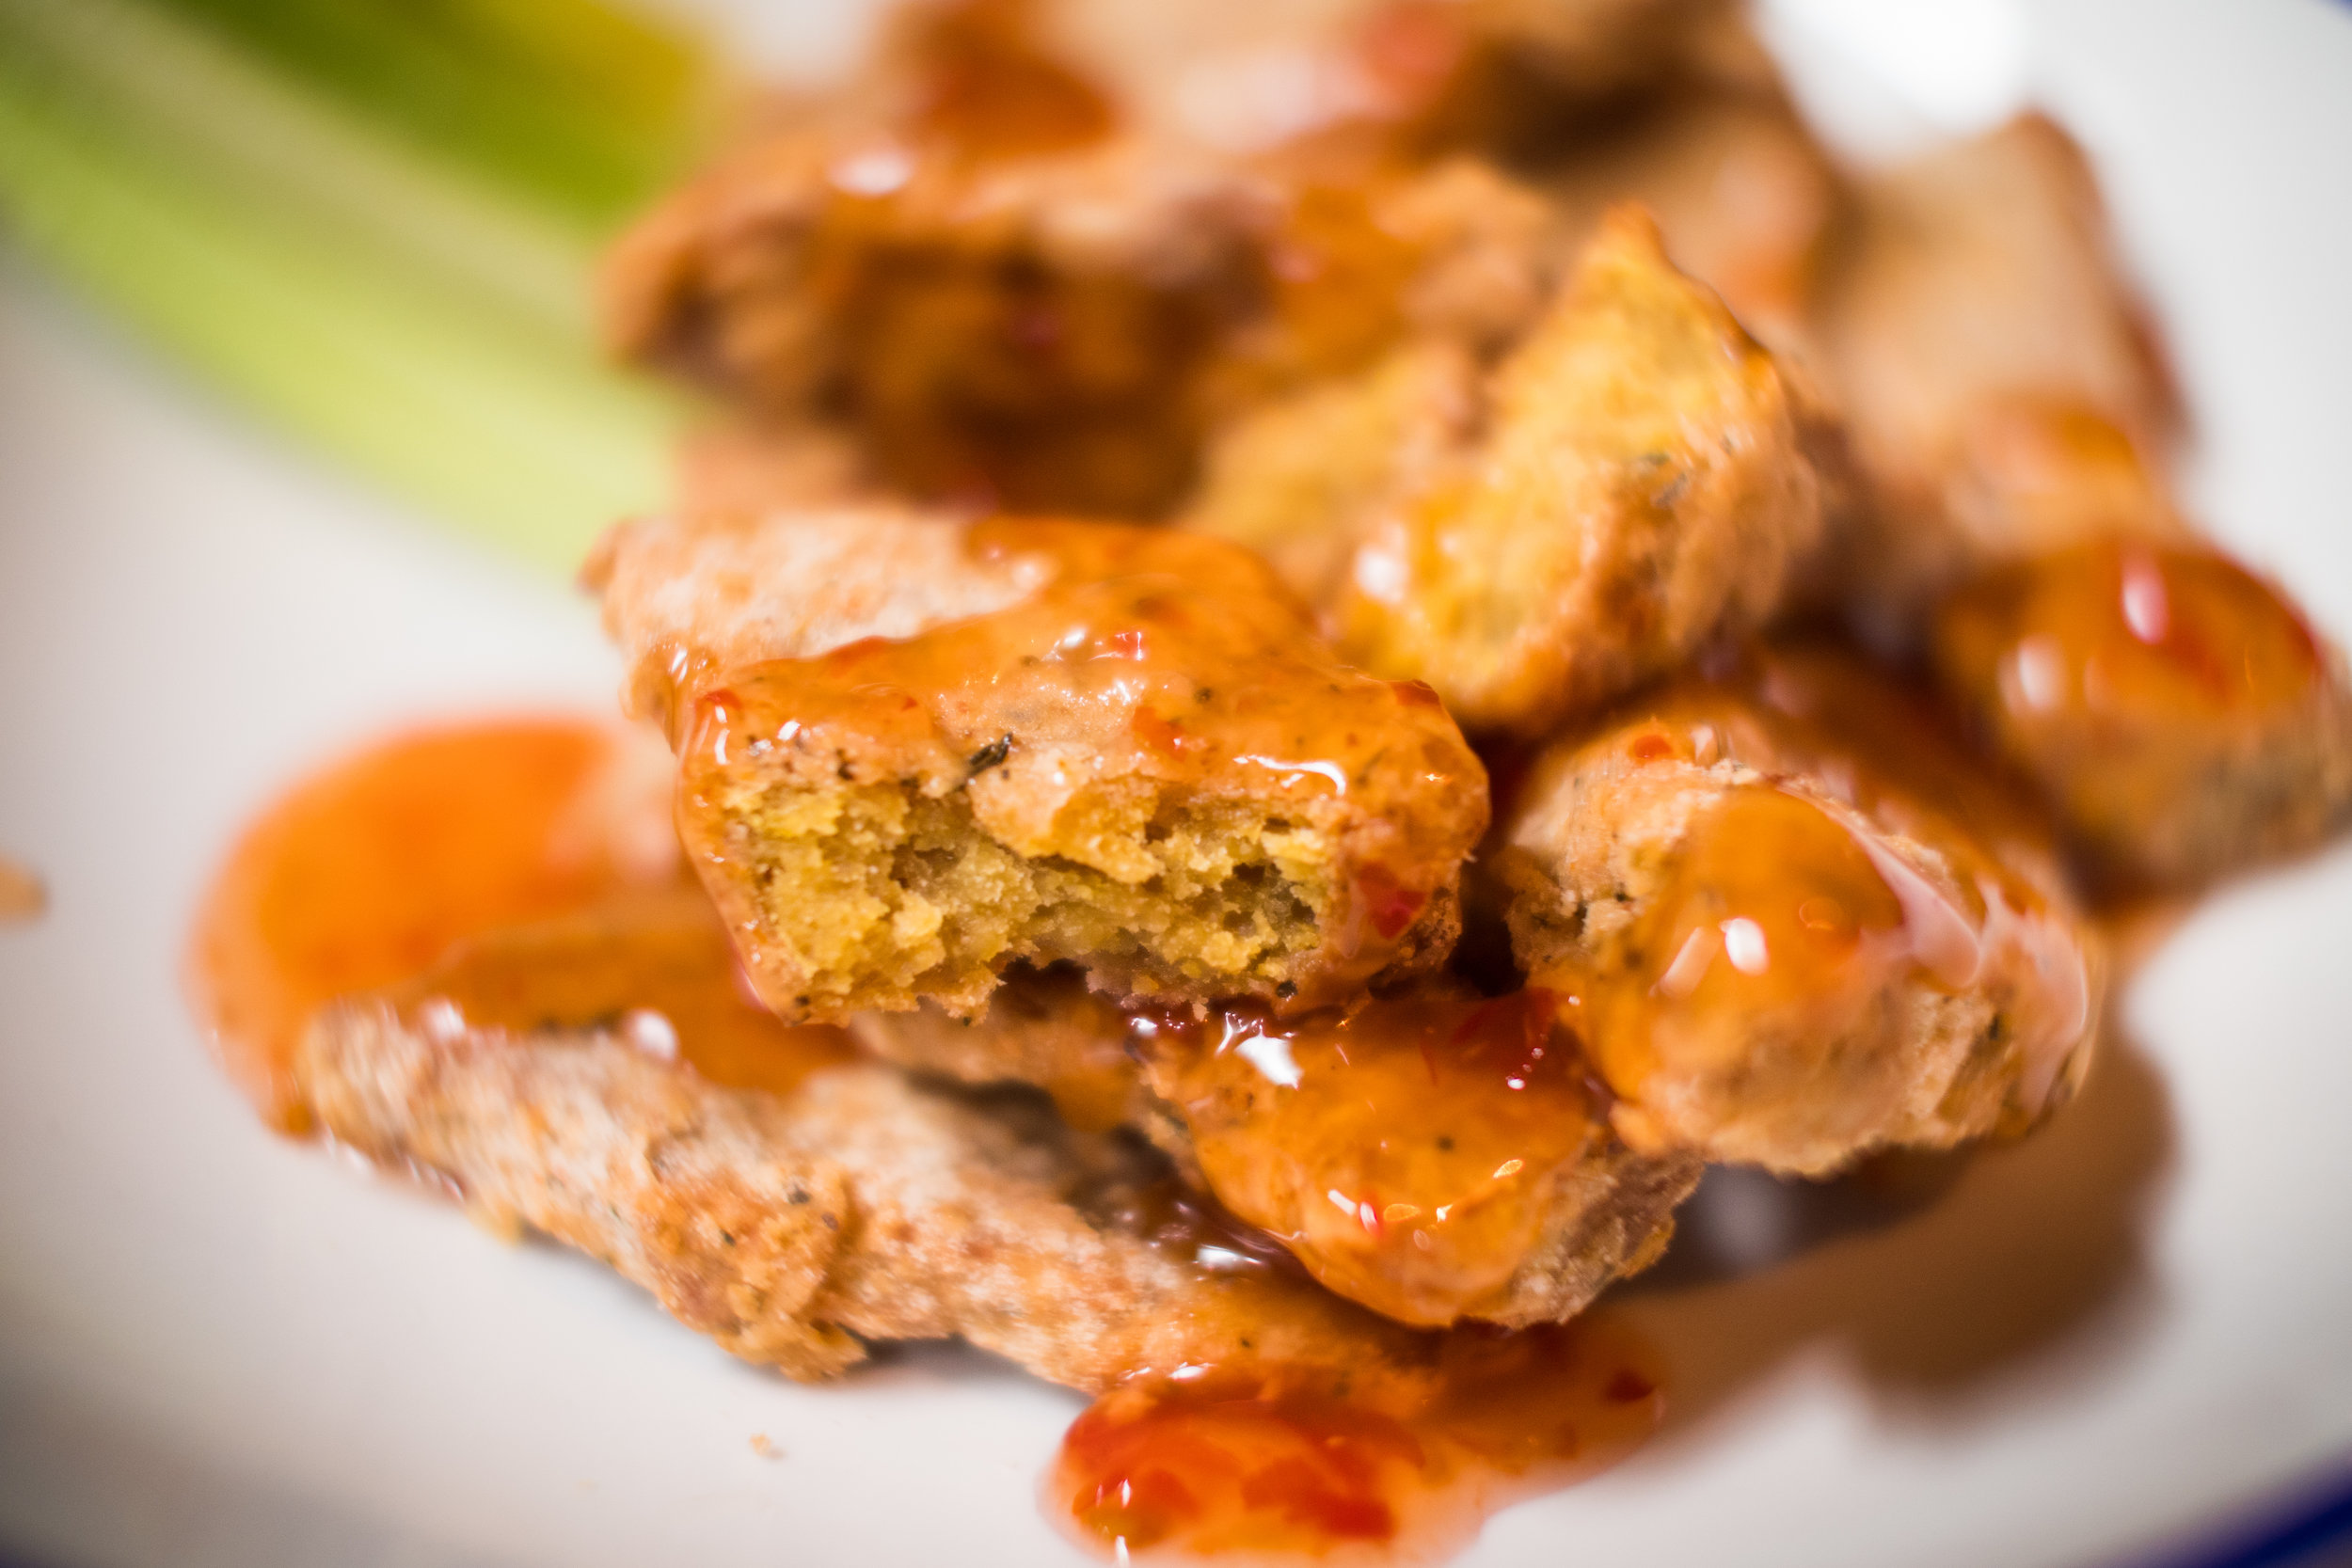 VEGAN WINGS [supplied by Moodley Manor] served with Sweet Chilli Sauce or Vegan BBQ Sauce on the side.